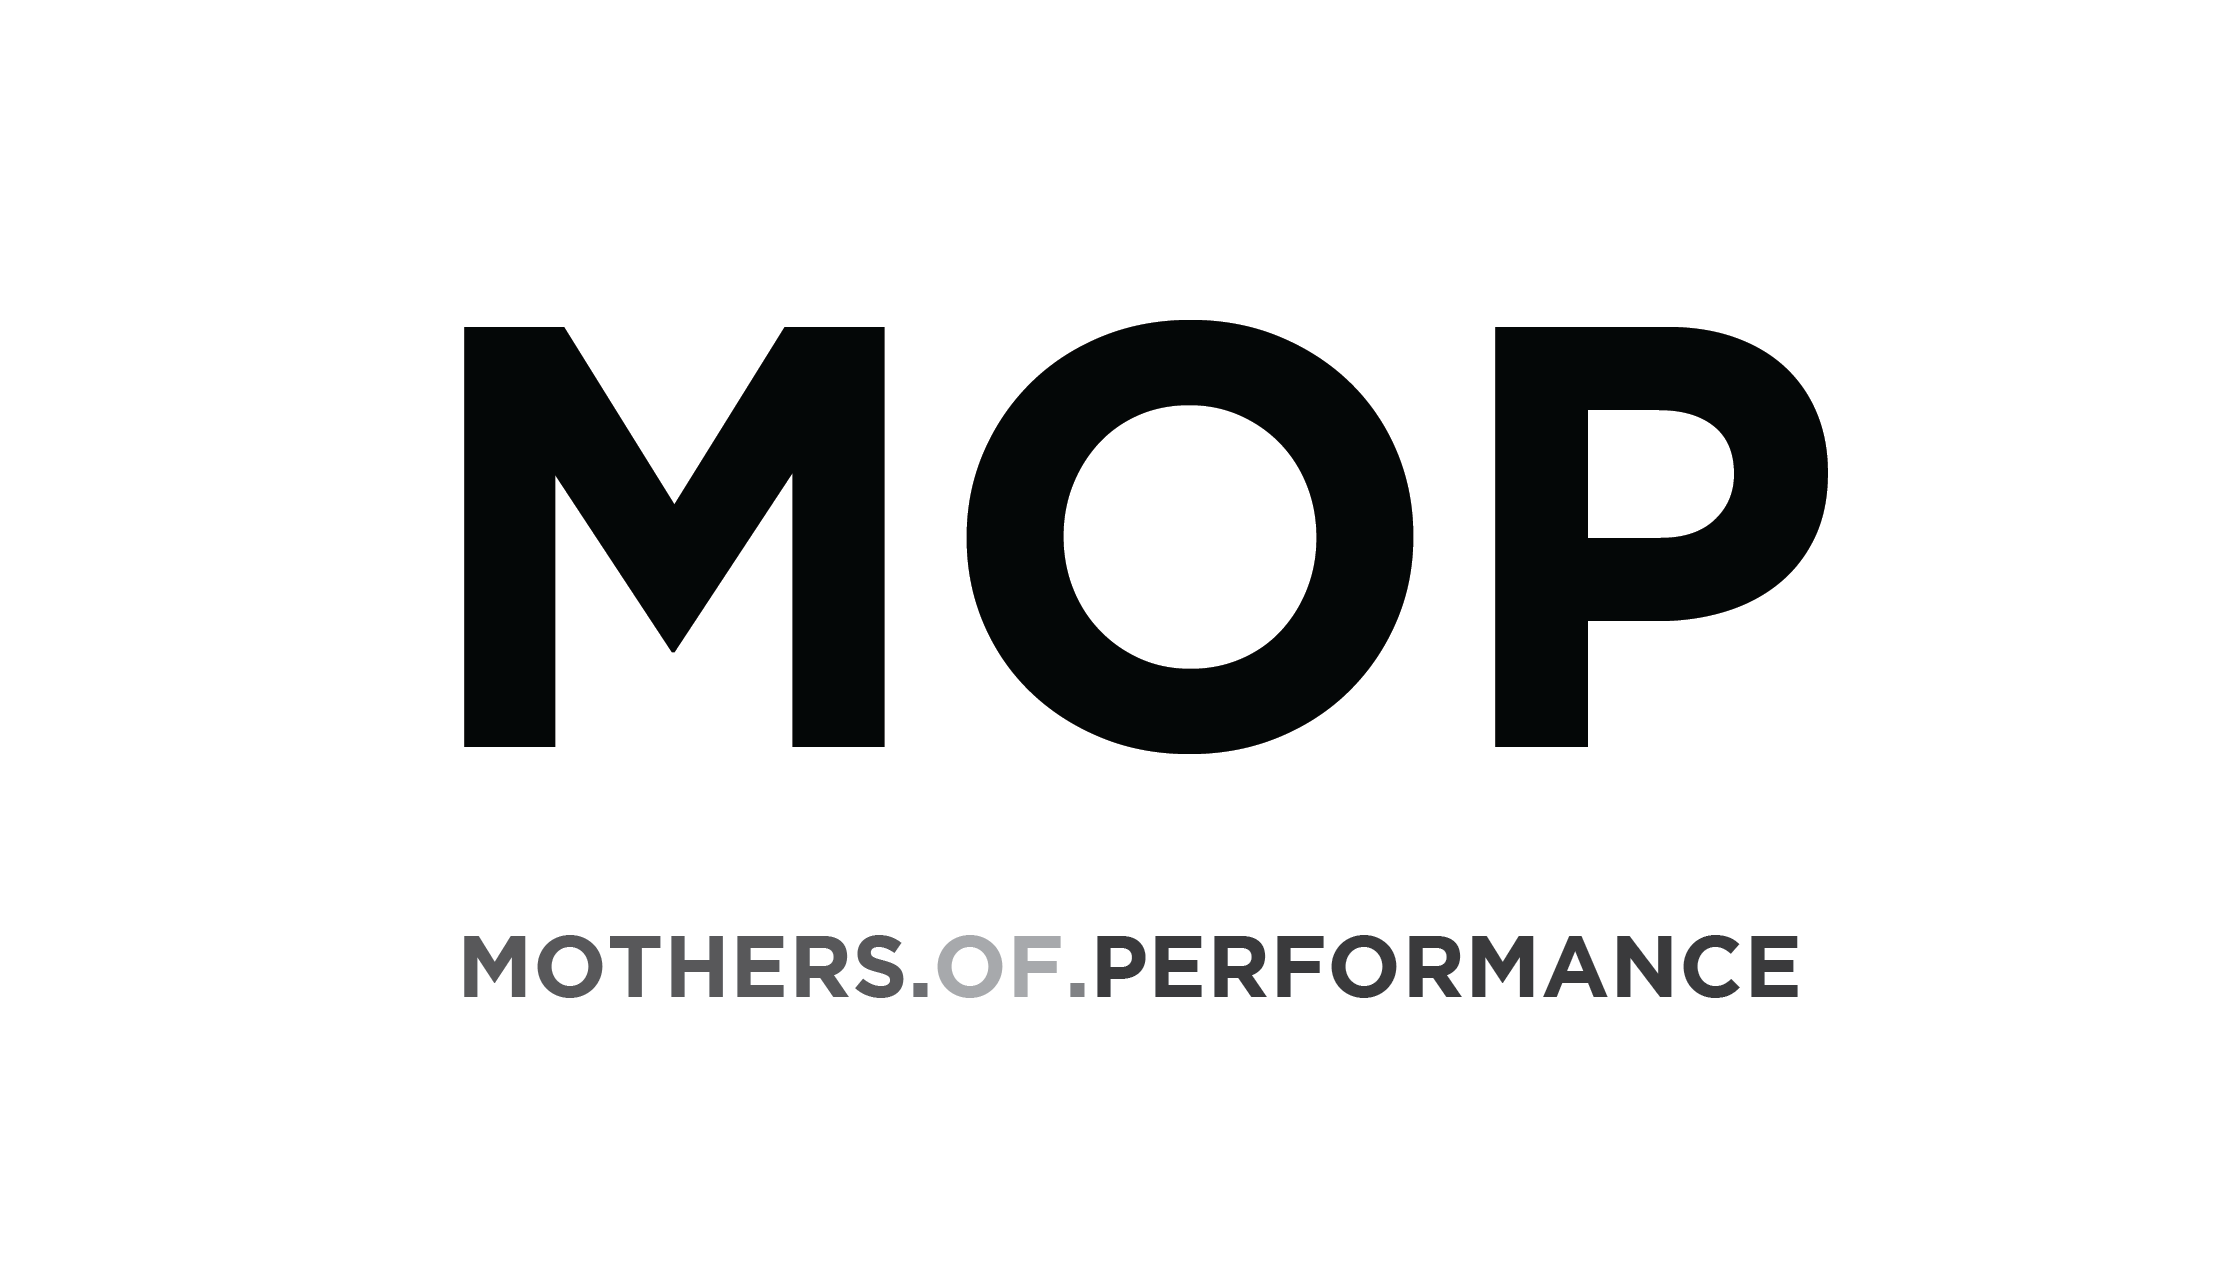 - M.O.P is Glasshouse's new online blogazine. The name stands for Mothers Of Performance- dedicated to all performance mothers- those who provide space, those who inspire heritage and those who bring life. Also, when one operates a performance art space one understands mopping in whole new ways.We will be publishing conversations, essays, reflections and special projects of Glasshouse and beyond that give performance it's sometimes missing context. To launch, we decided to share some materials which were not yet online- some were published in print and some never before. If you'd like to become a contributor- please send us a note